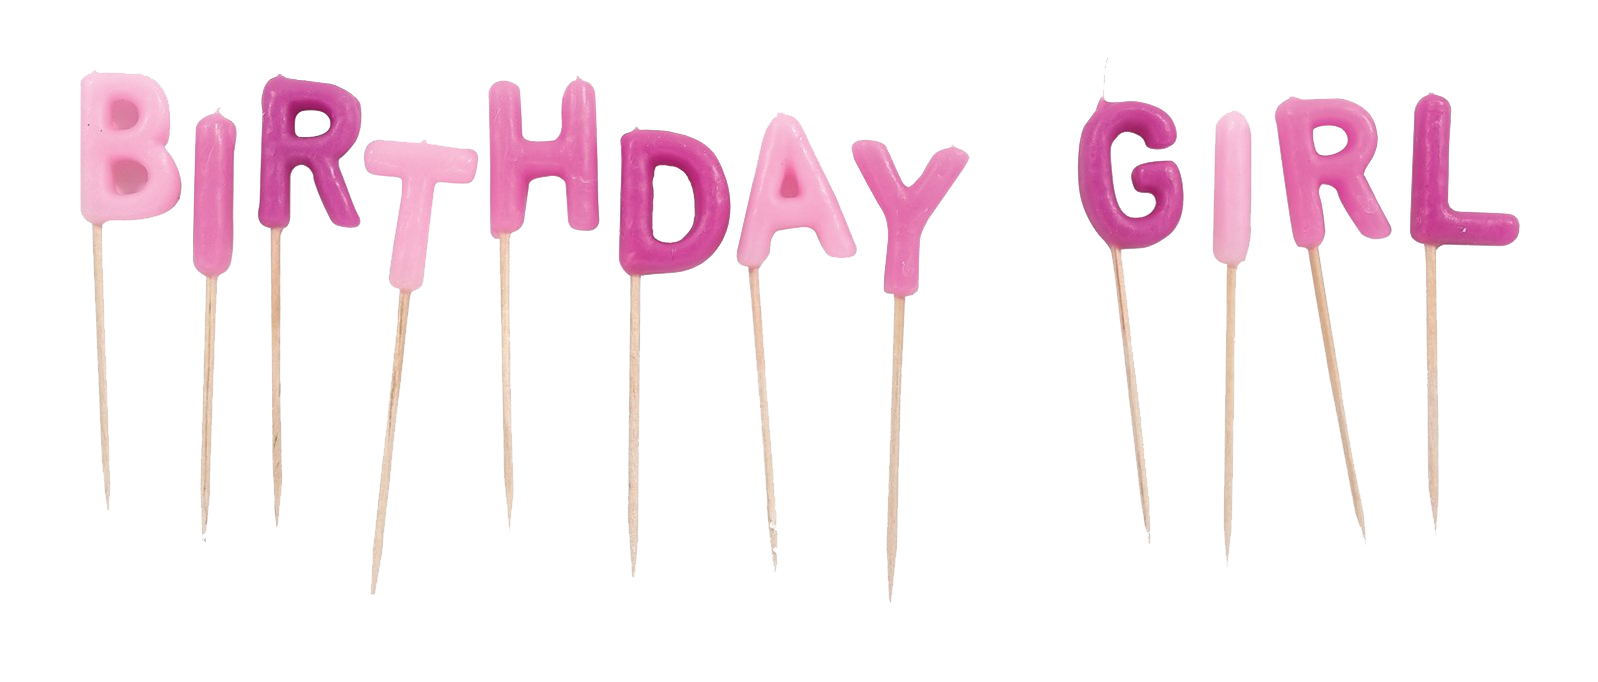 Lit number 1 and 5 birthday candles png. Transparent images all clipart